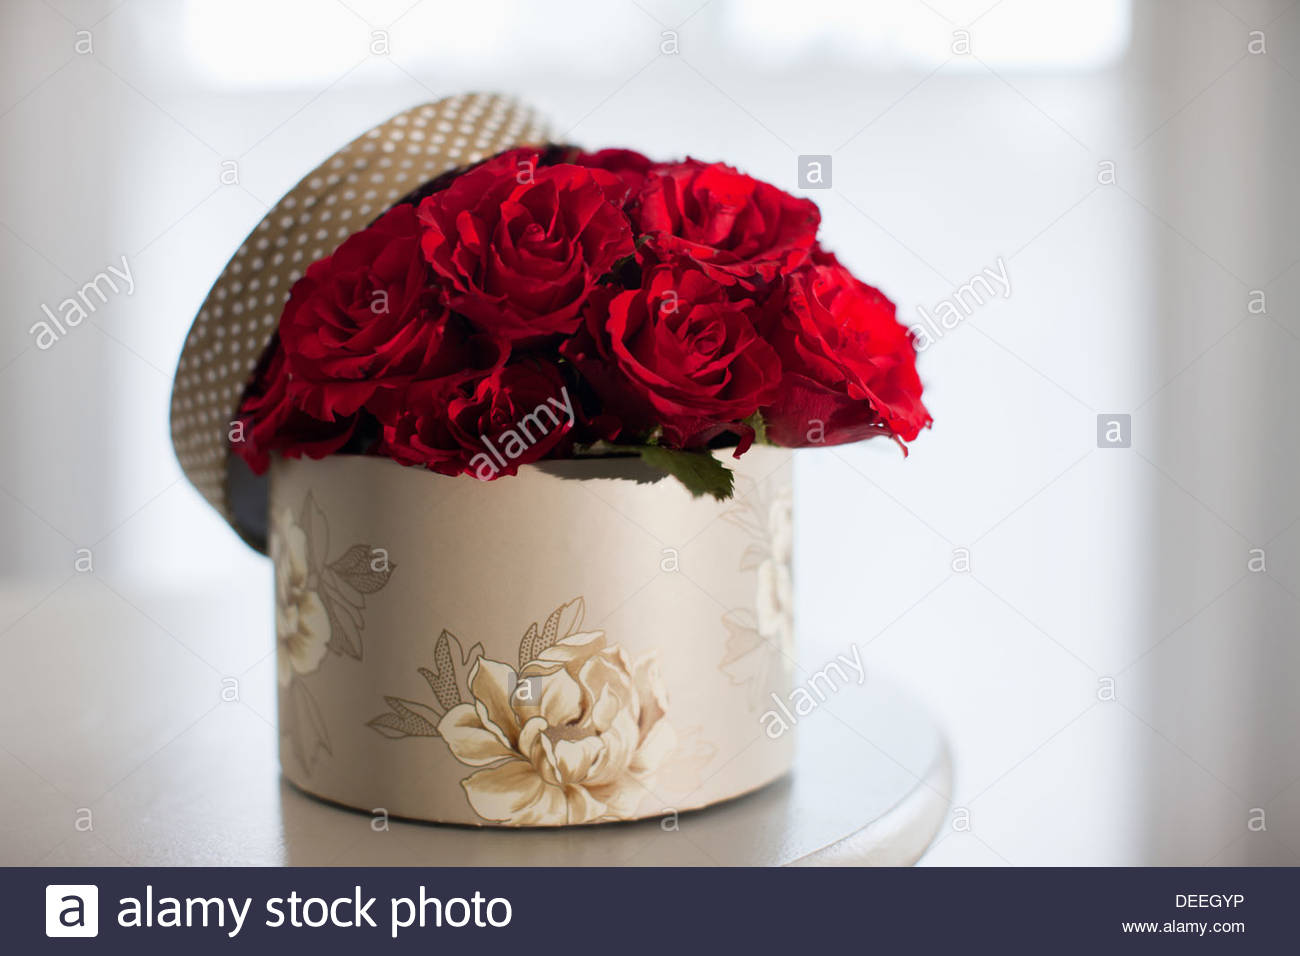 Red Rose Bouquet In Gift Box Stock Photo 60556938 Alamy